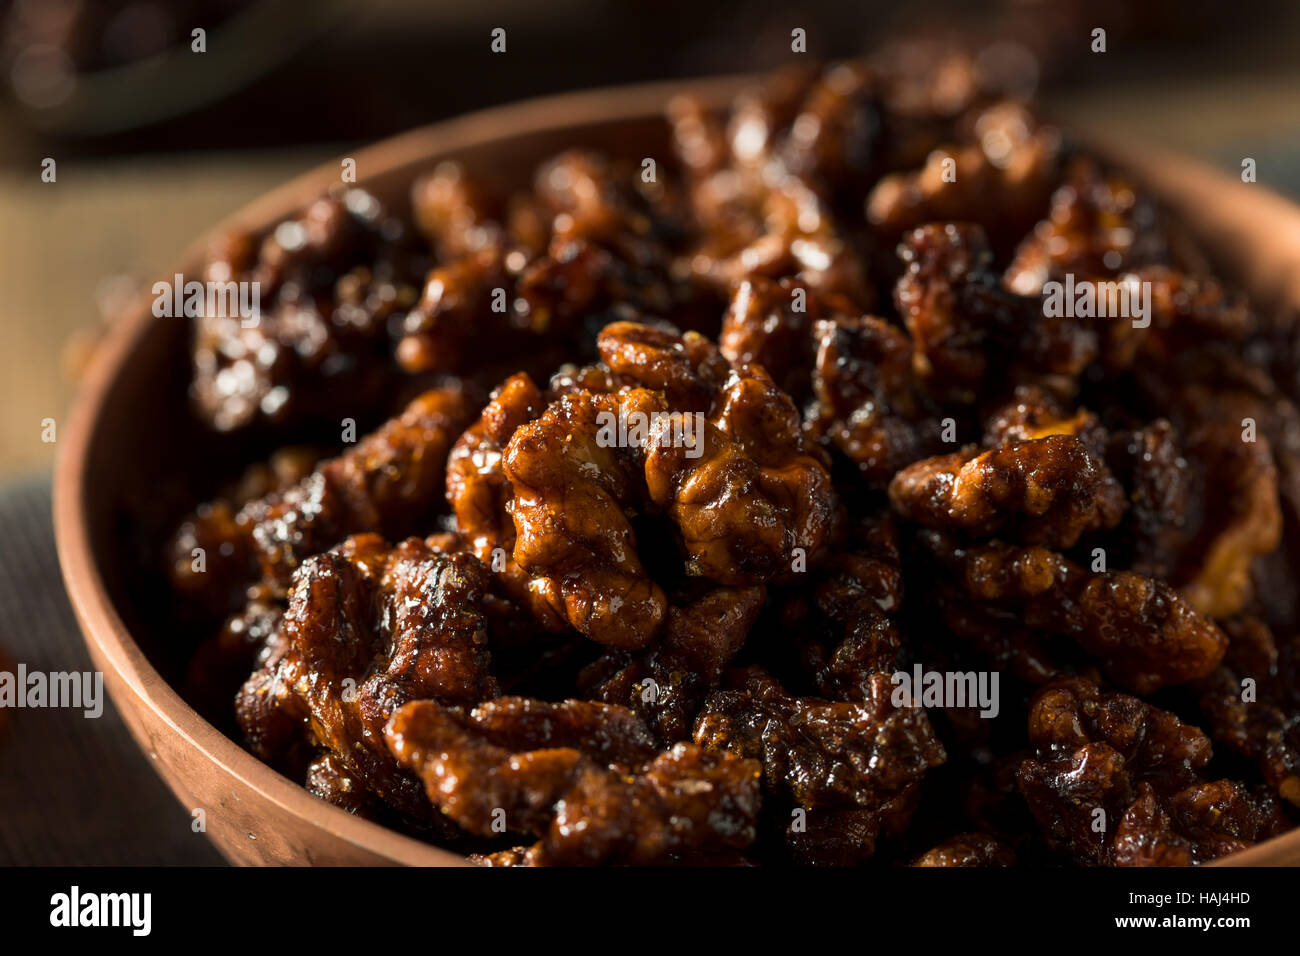 Sweet Homemade Candied Walnuts Ready to Eat - Stock Image